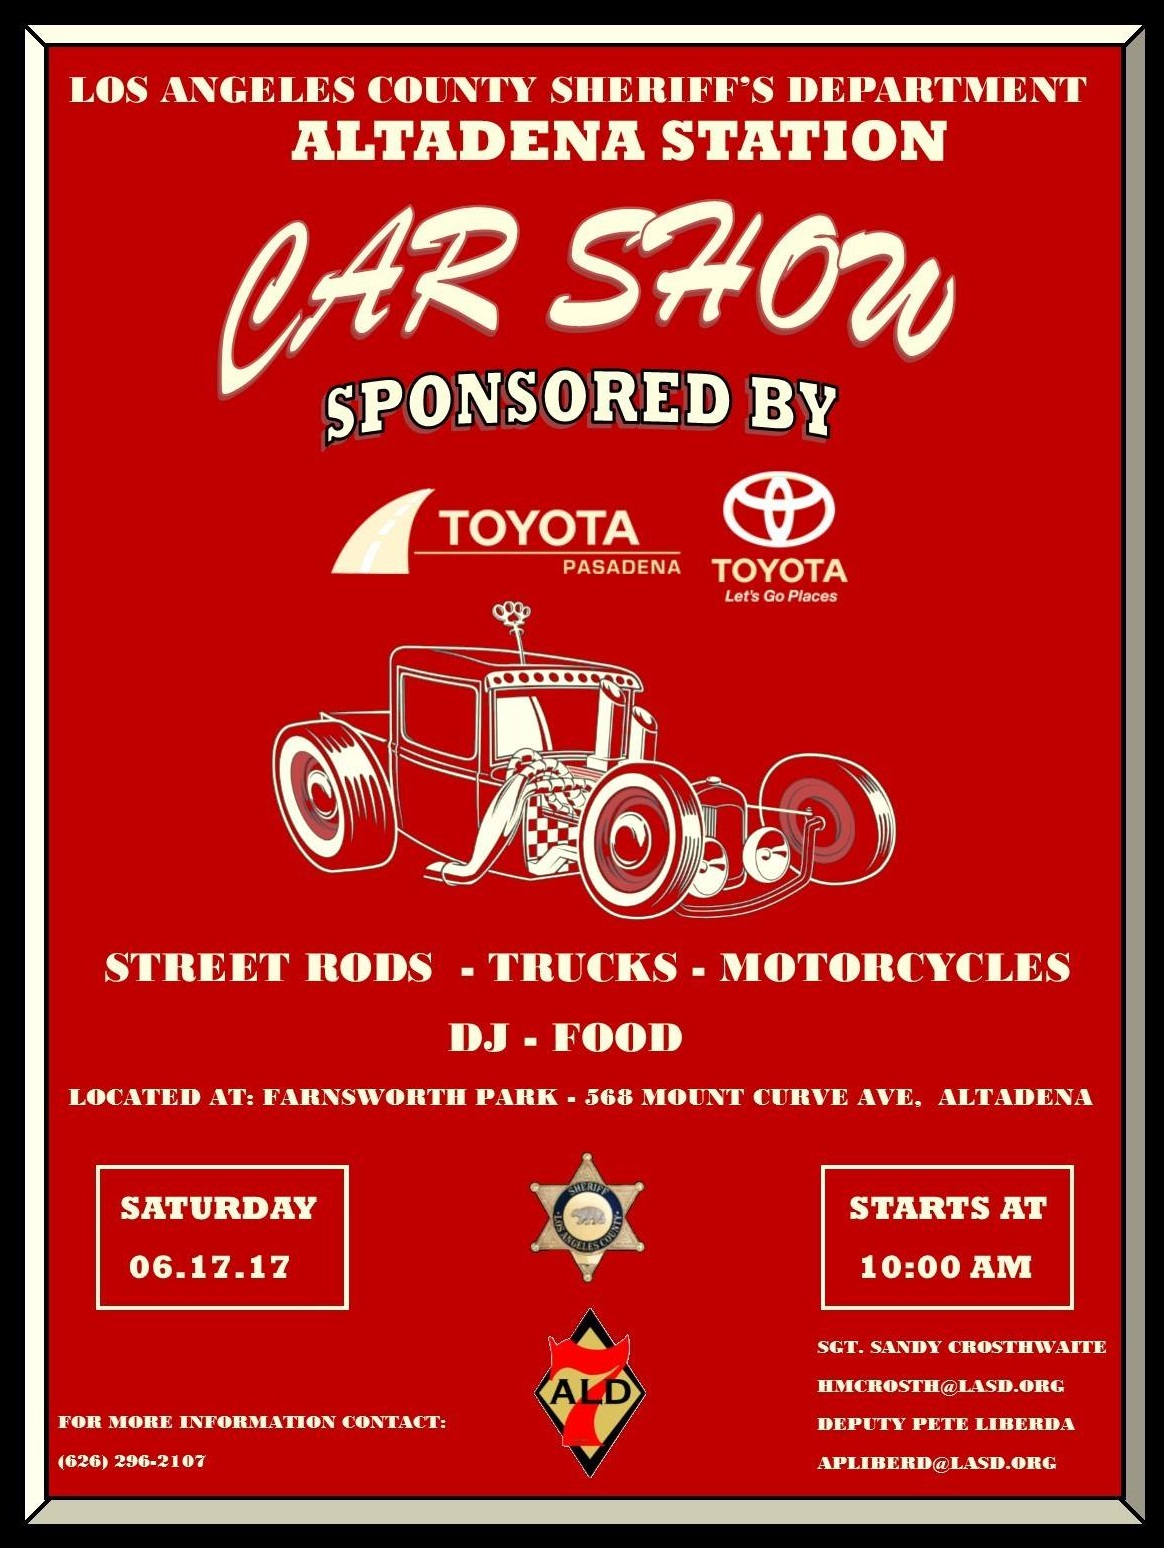 Altadena's 5th Annual Car Show to be Held at Farnsworth Park, Saturday June 17